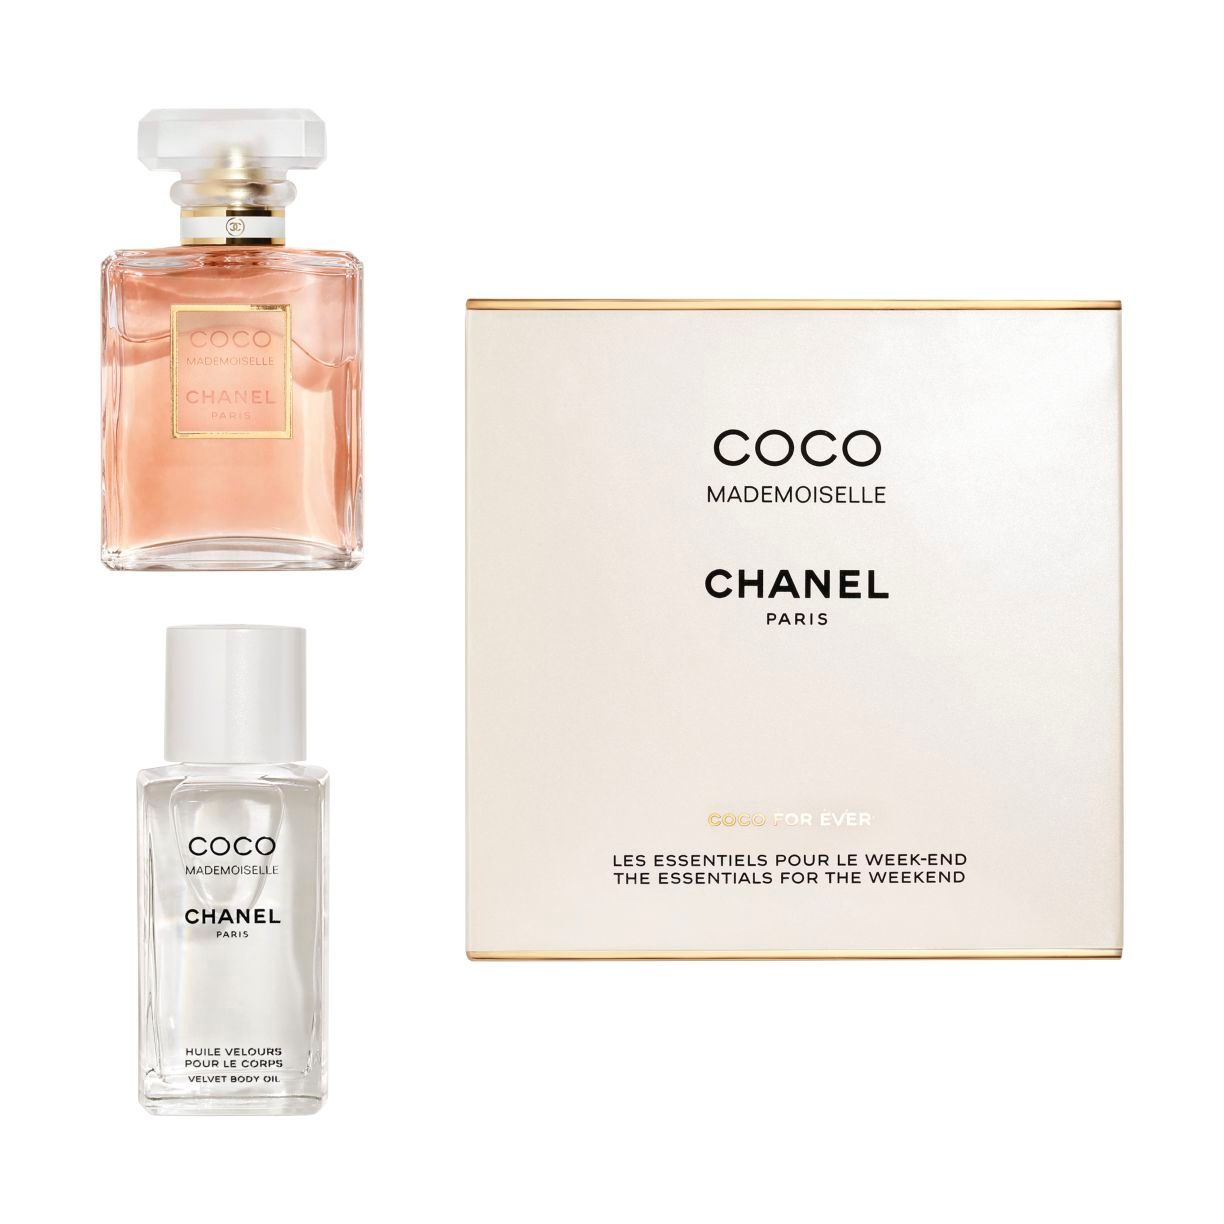 COCO MADEMOISELLE THE ESSENTIALS FOR THE WEEKEND